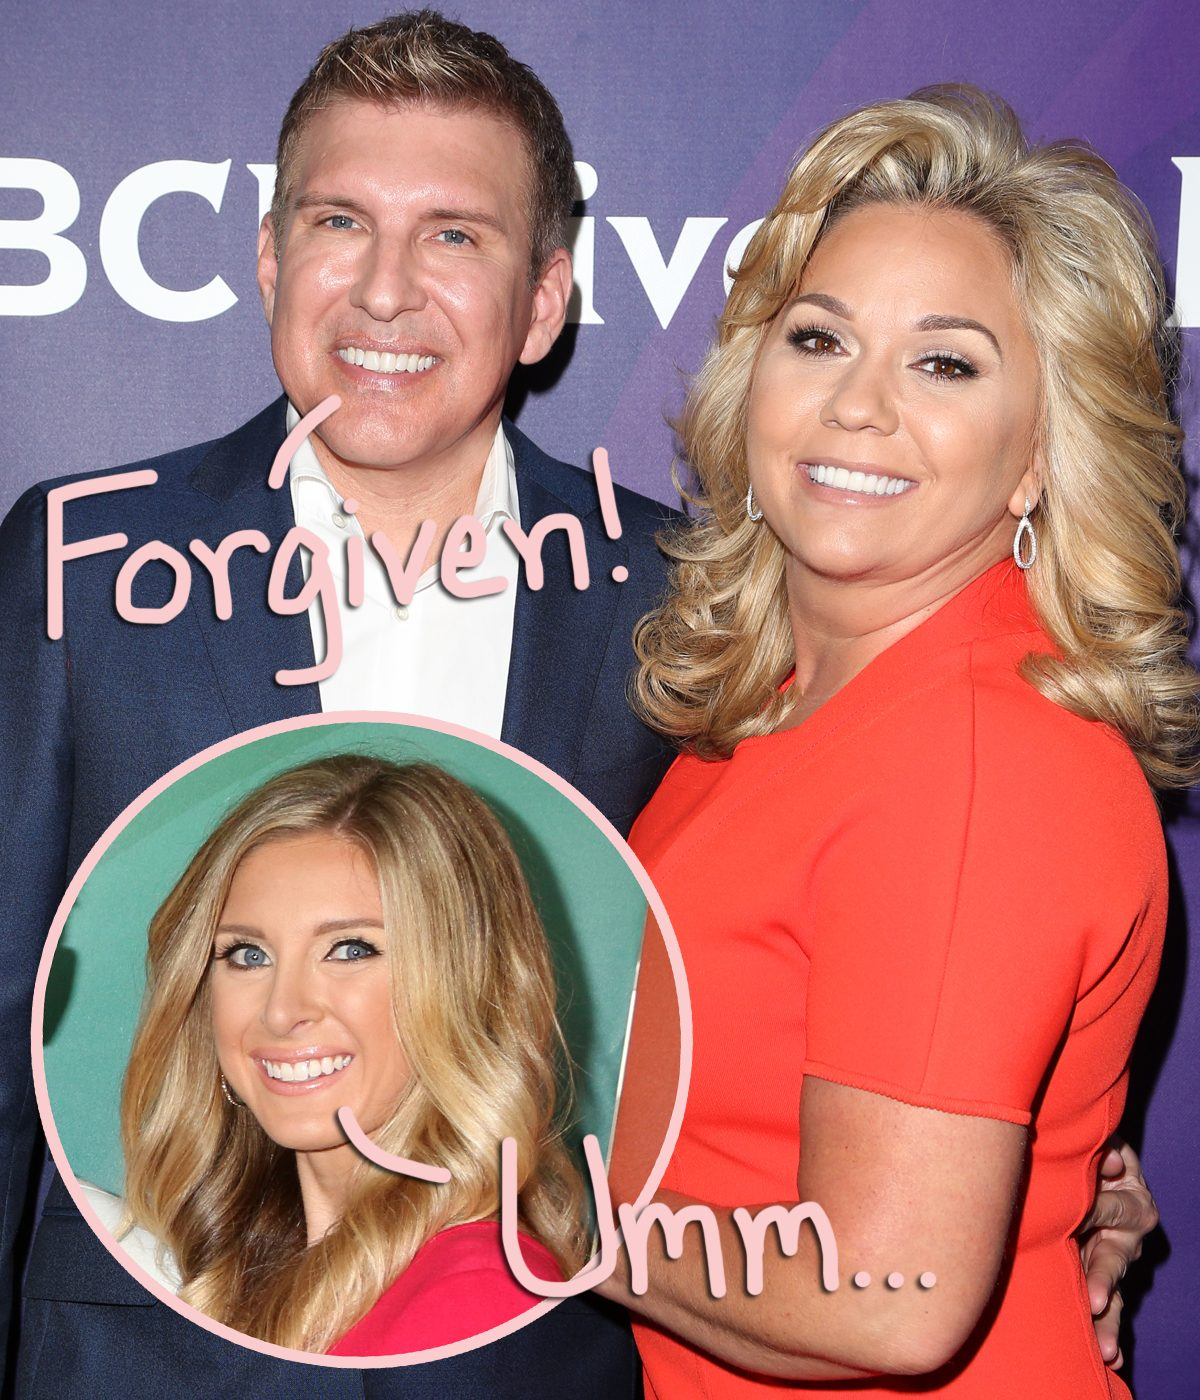 Todd Chrisley Says Hes Forgiven Estranged Daughter Lindsie For